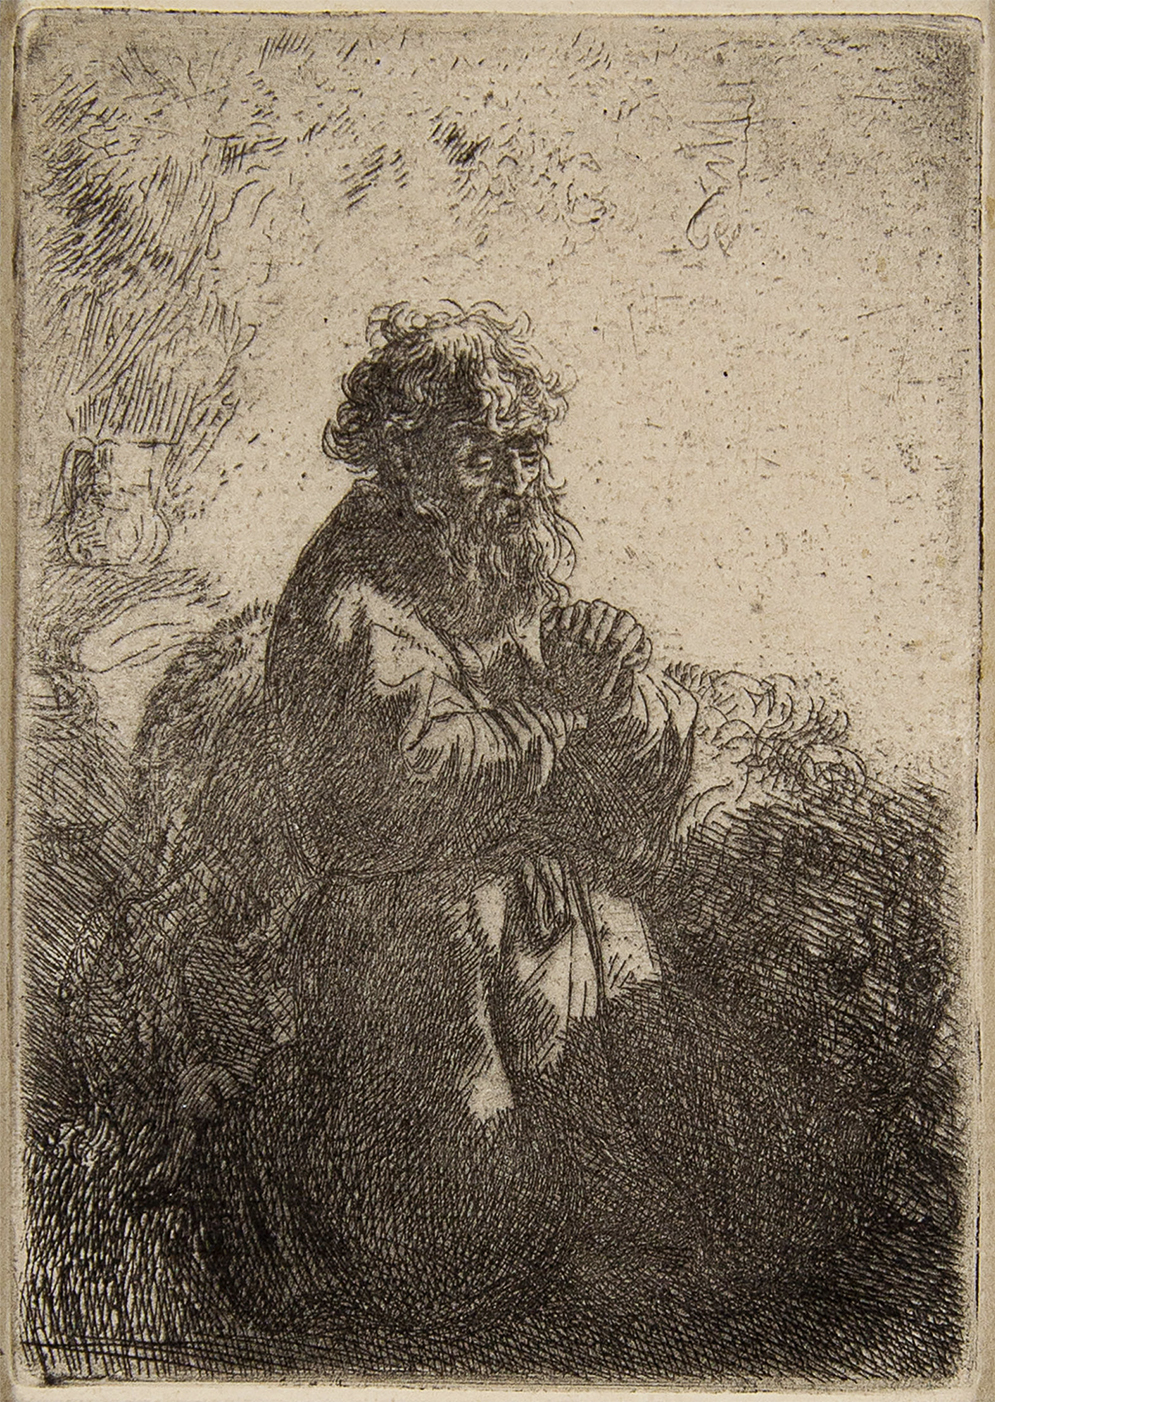 Rembrandt, etching of St. Jerome Kneeling in Prayer, Looking Down